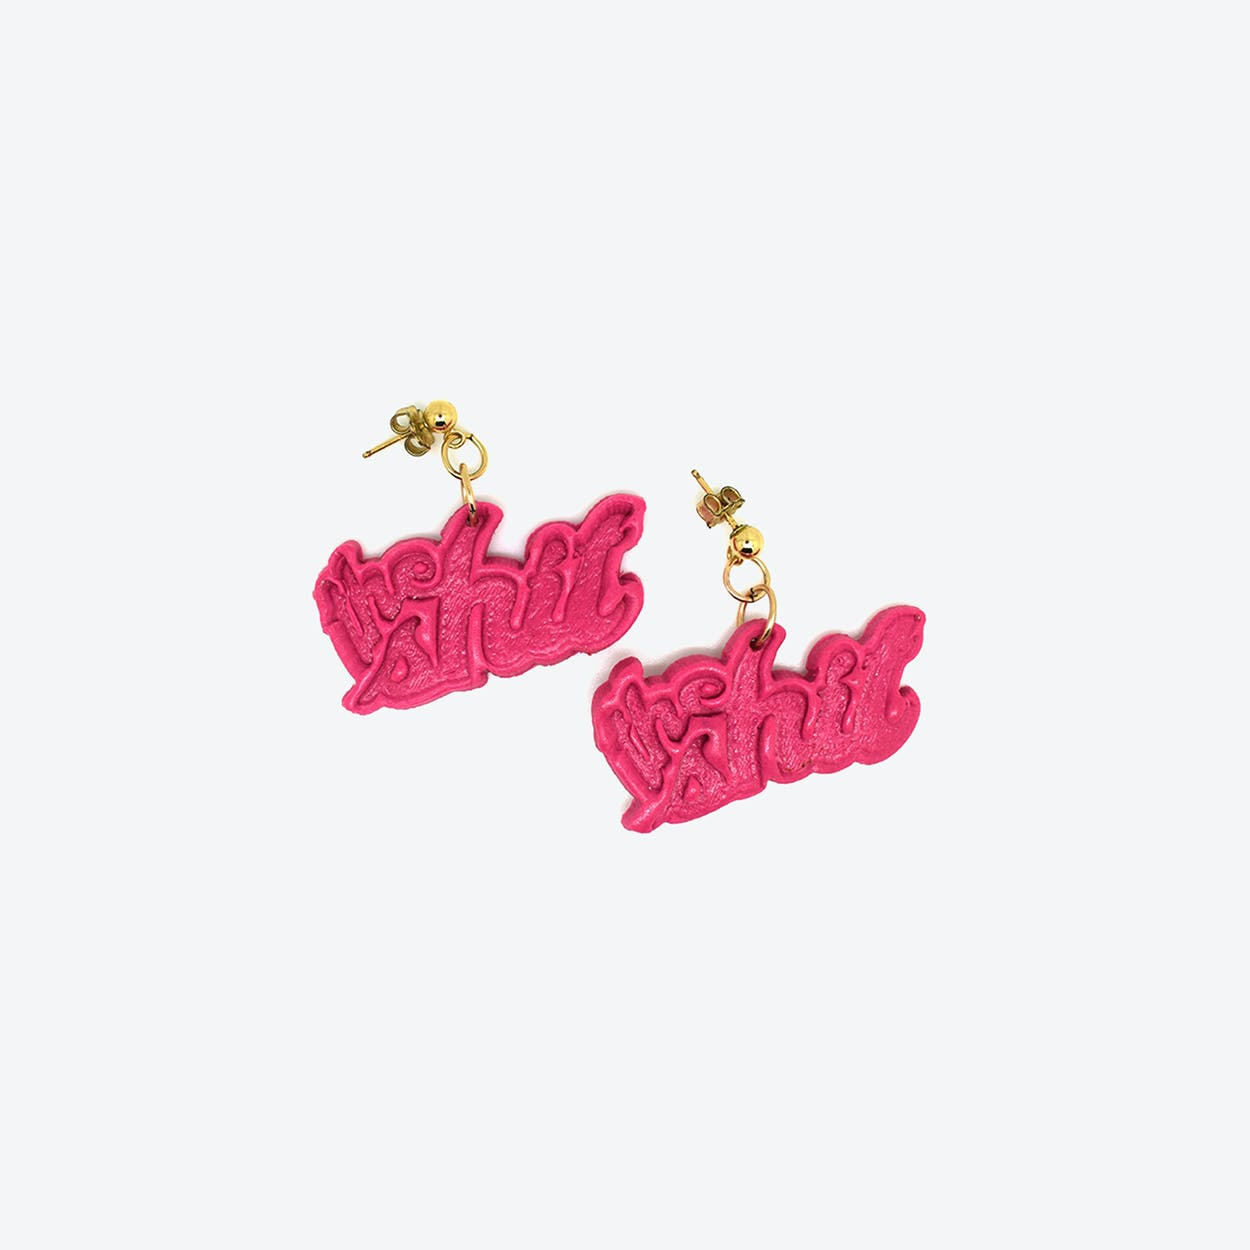 Humility Earrings - Pink